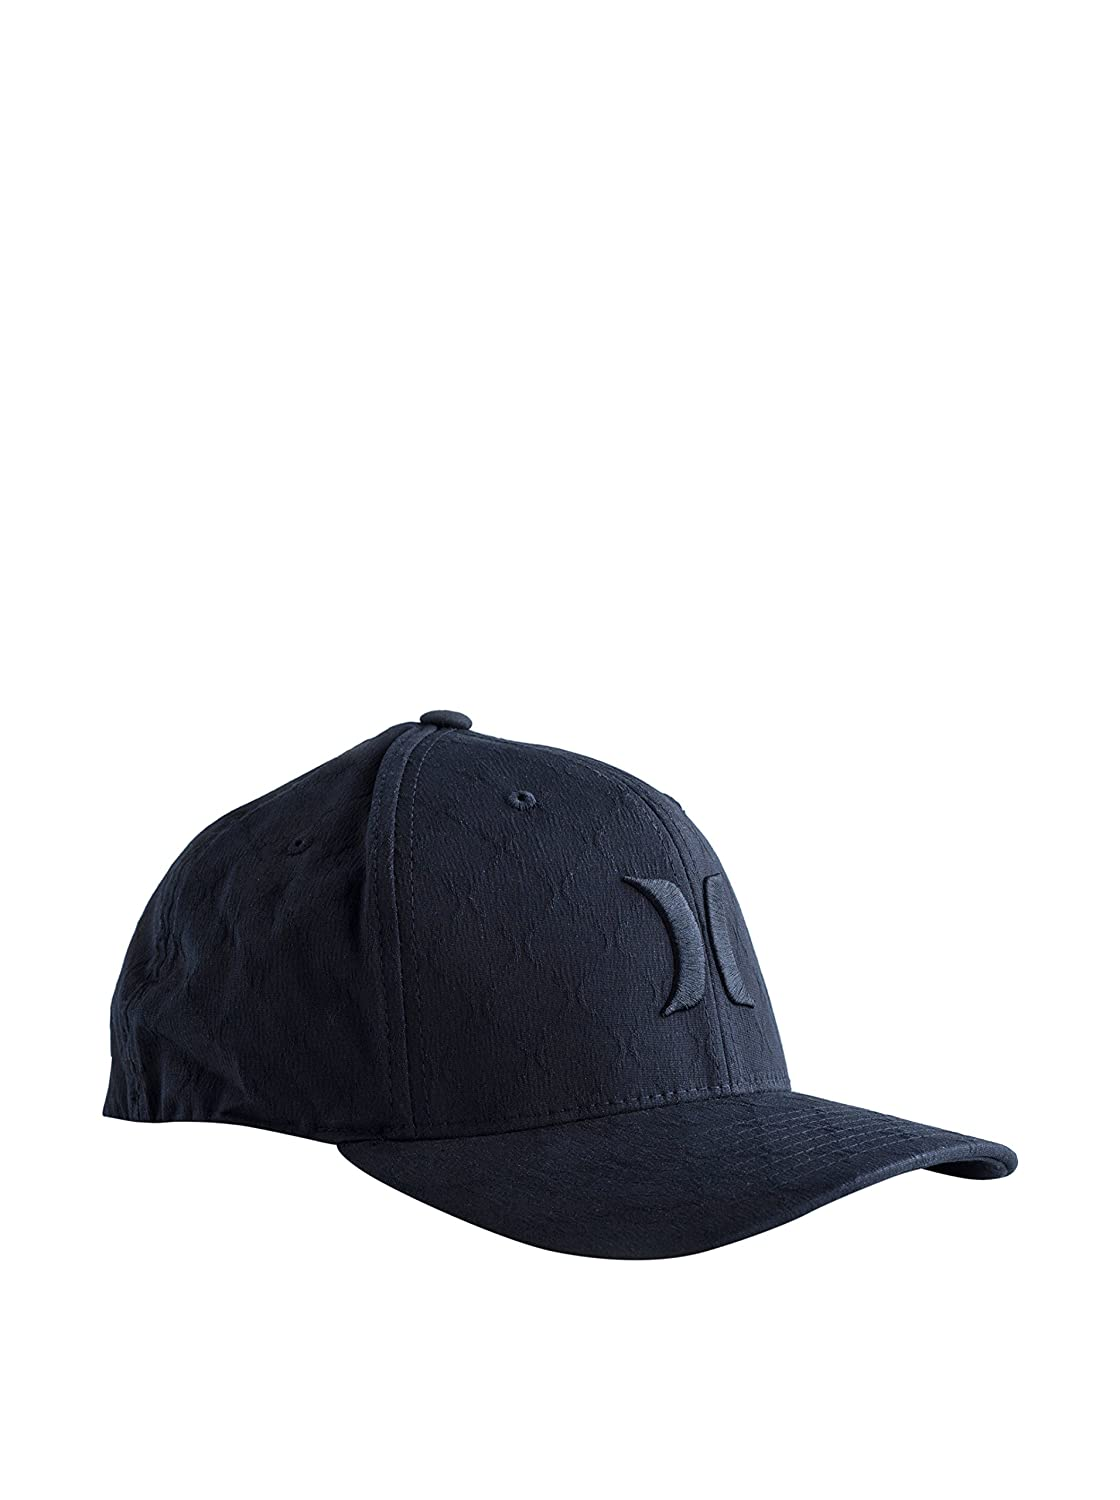 Nike Hurley Gorra One & Only Black Flexfit Negro L/XL: Amazon.es ...